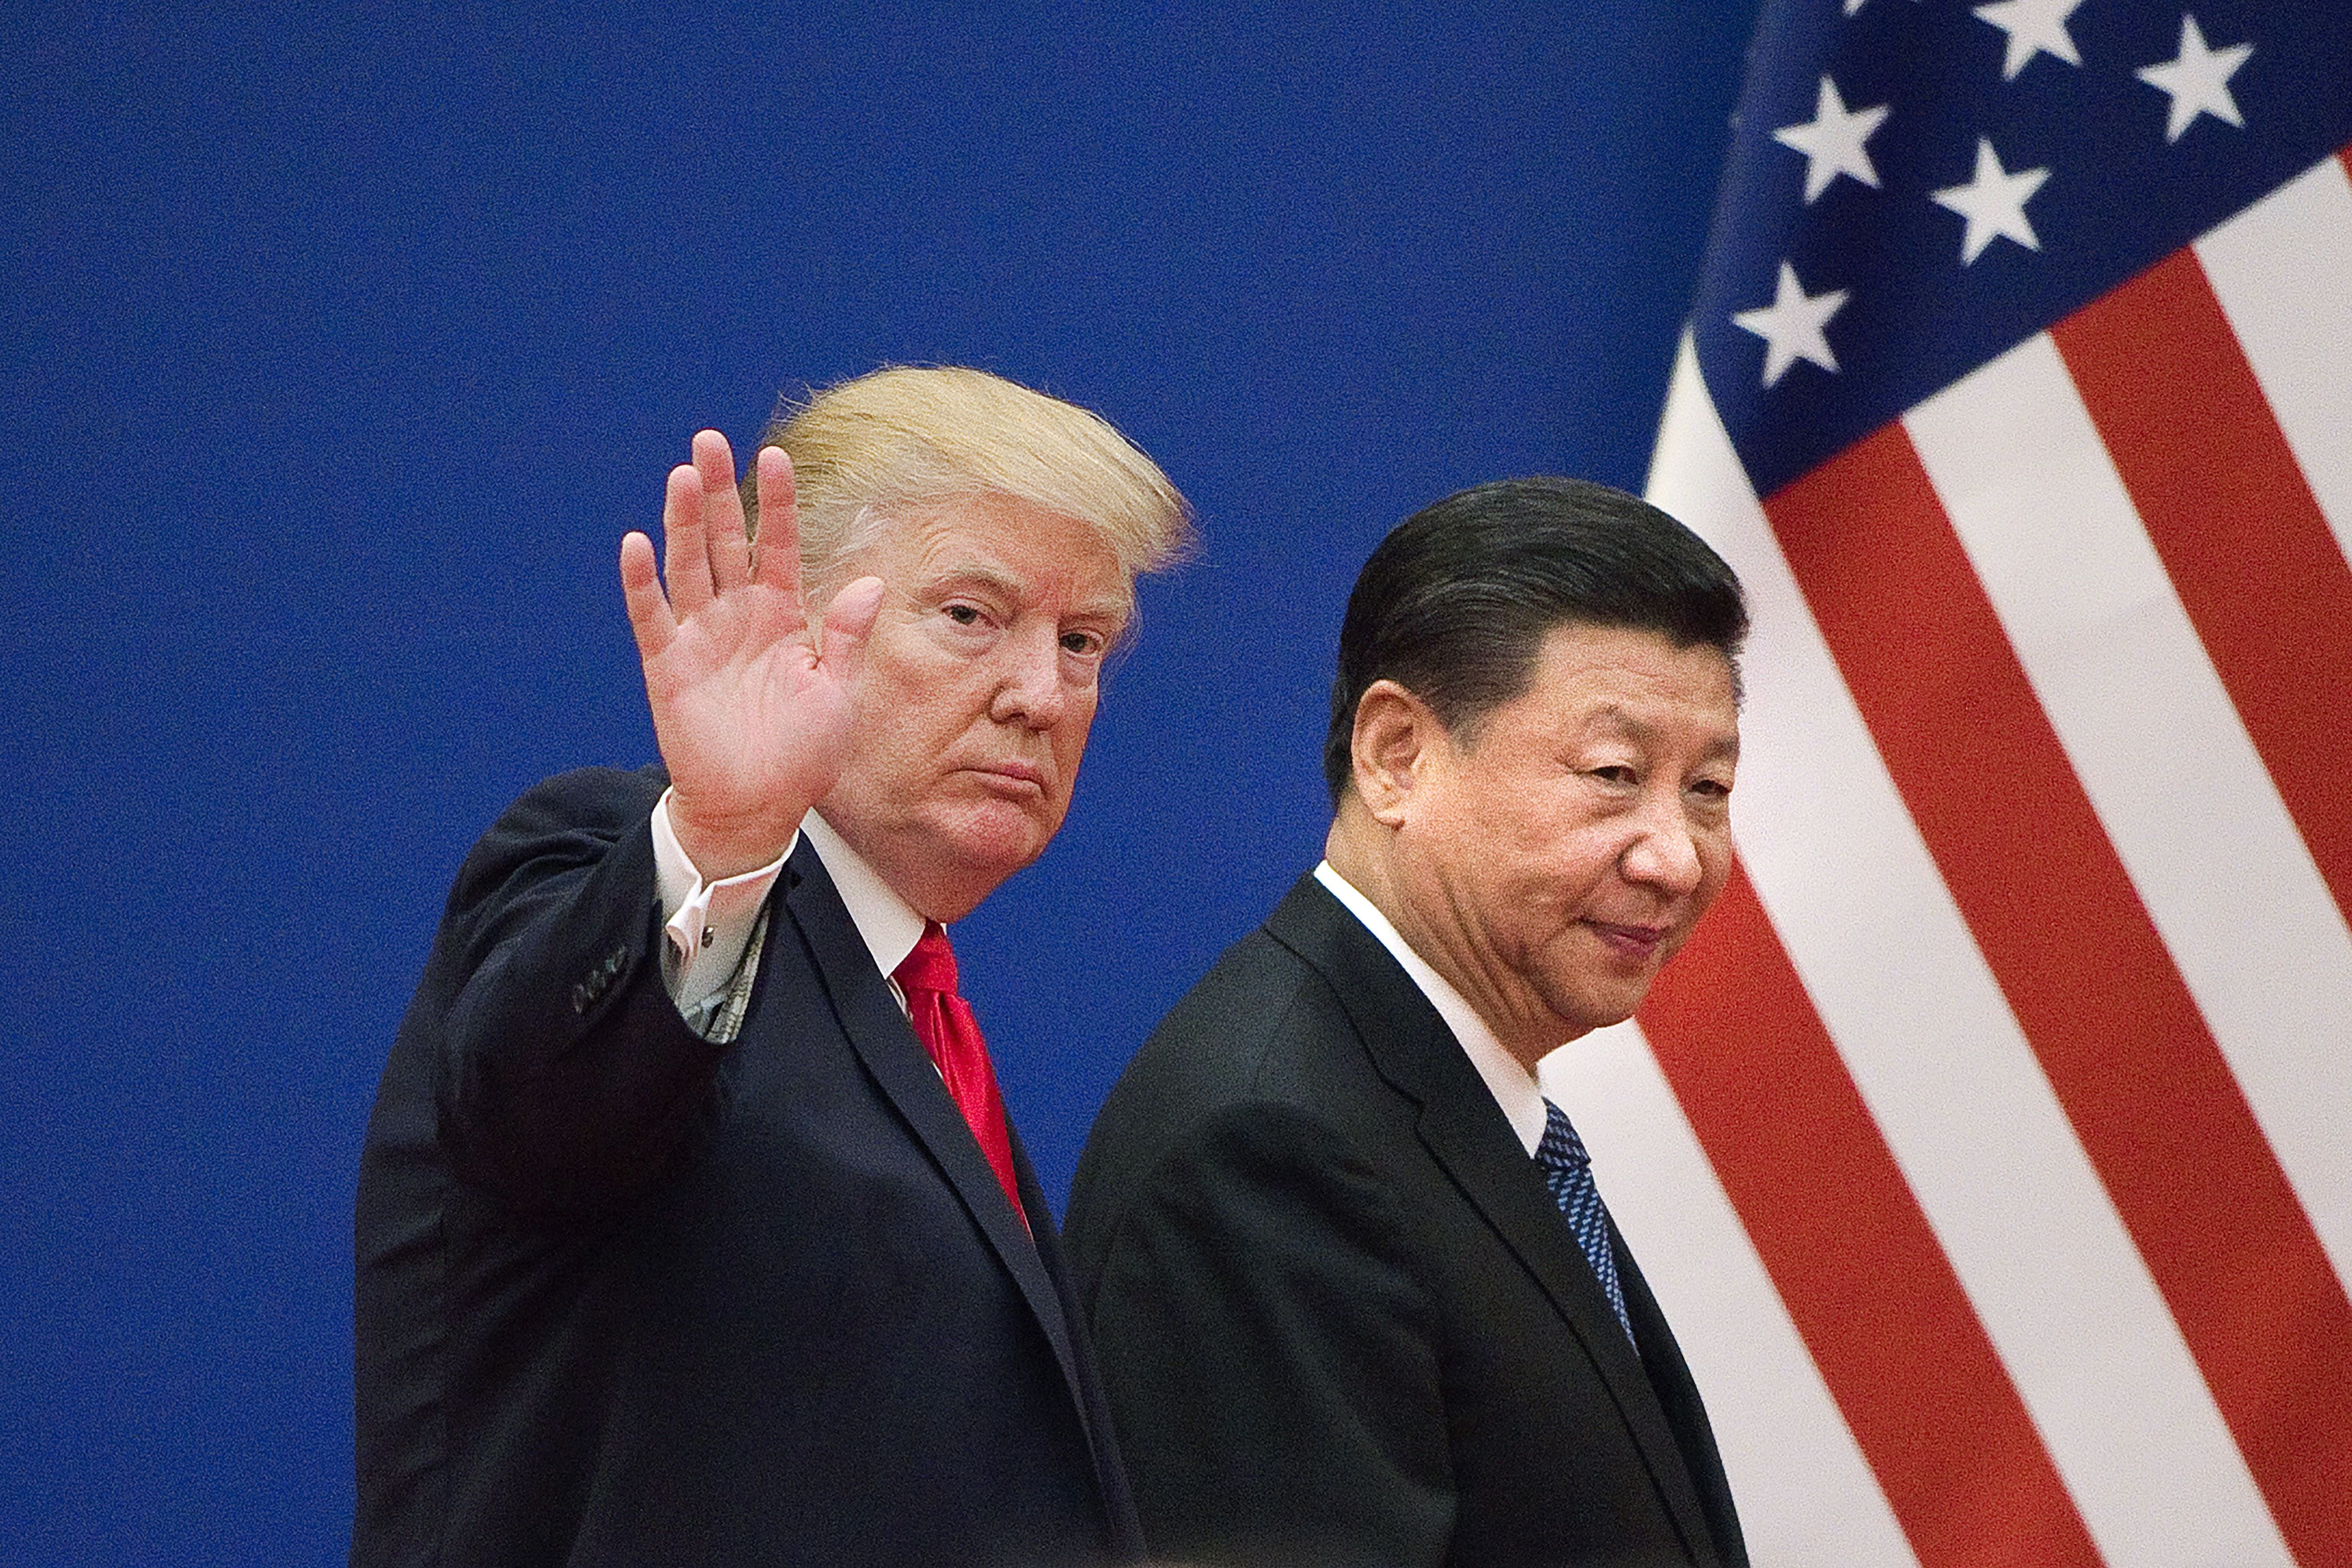 Is a New Cold War Emerging Between America and China?